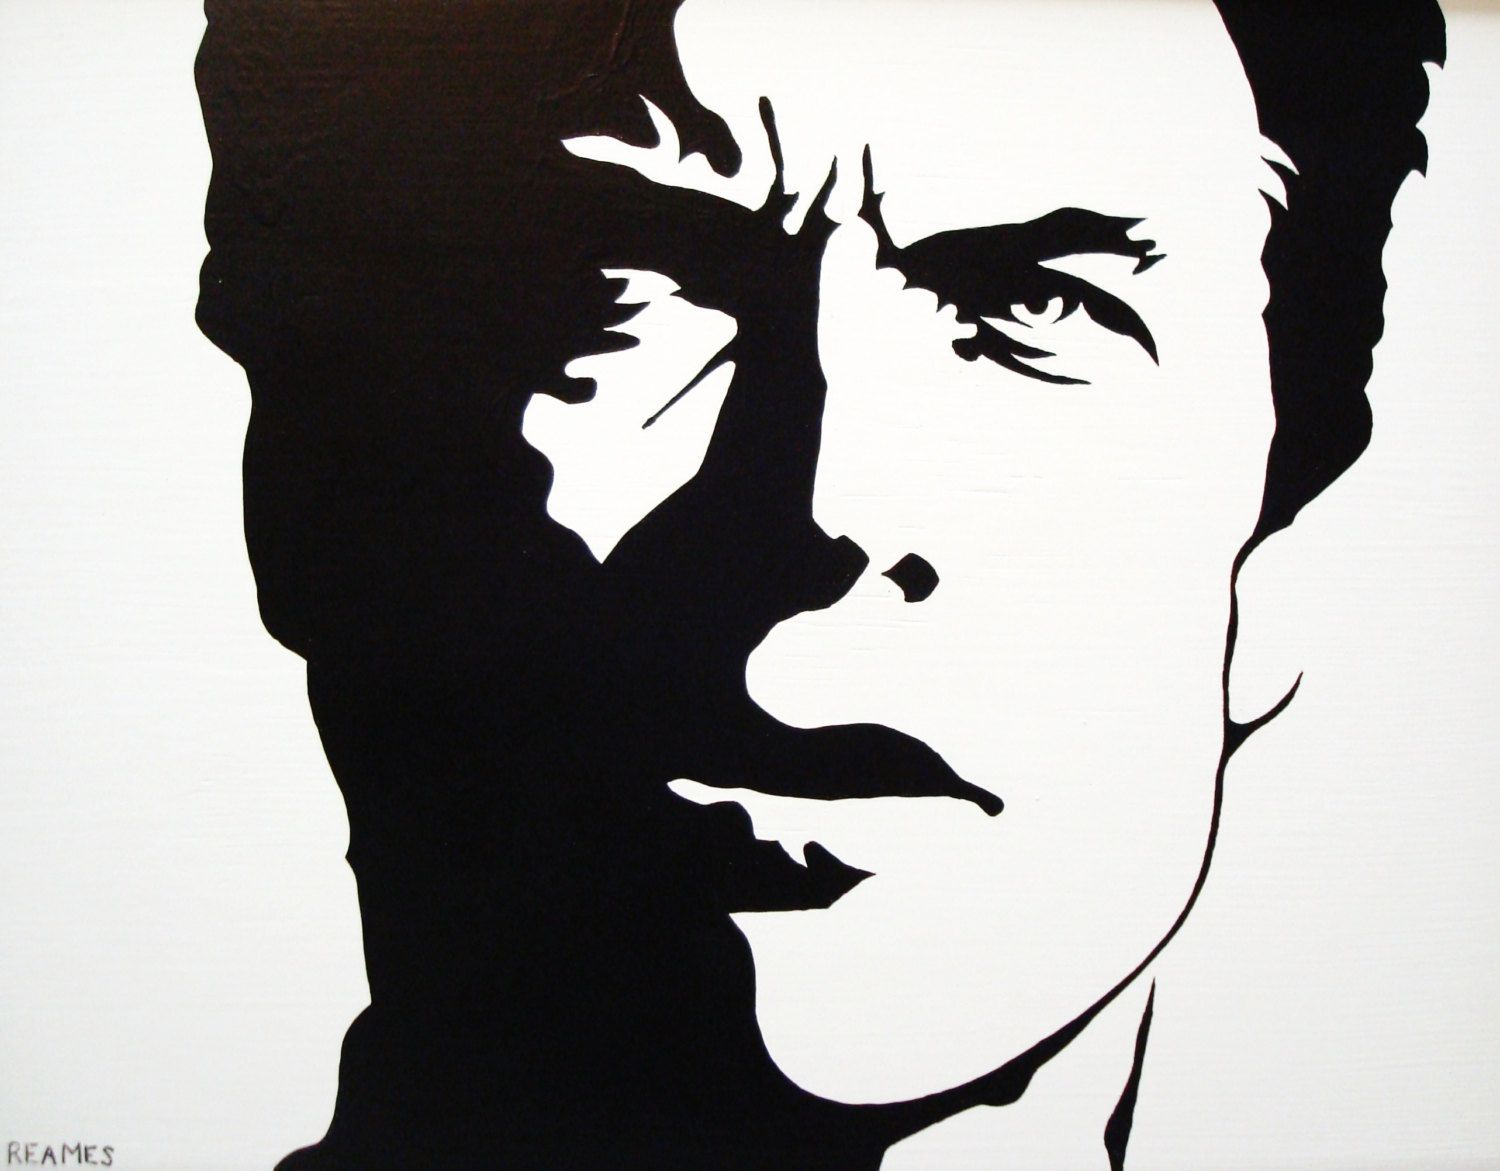 clint eastwood black white pop art 69 00 via etsy artwork